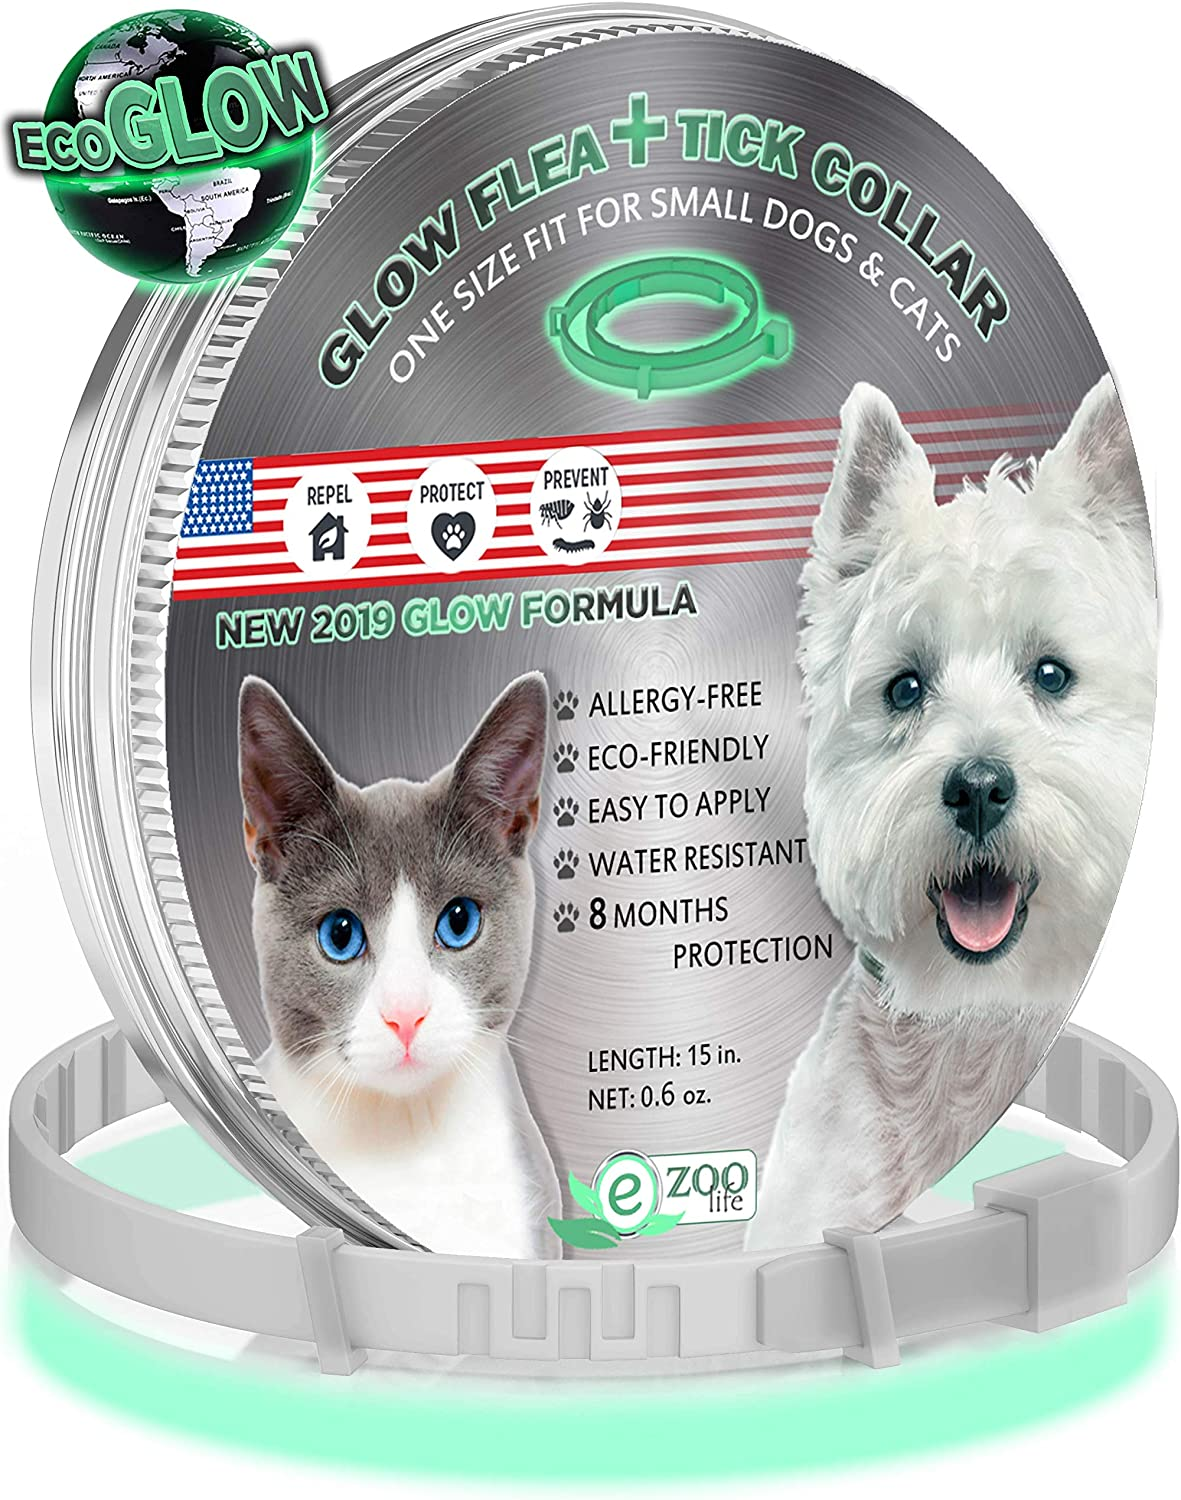 еZoolife Glow Eco Pest Control Collar: Hypoallergenic Waterproof Protection lange Lasting Flea und Tick Prevention Fully Adjustable ein Size Fits All!